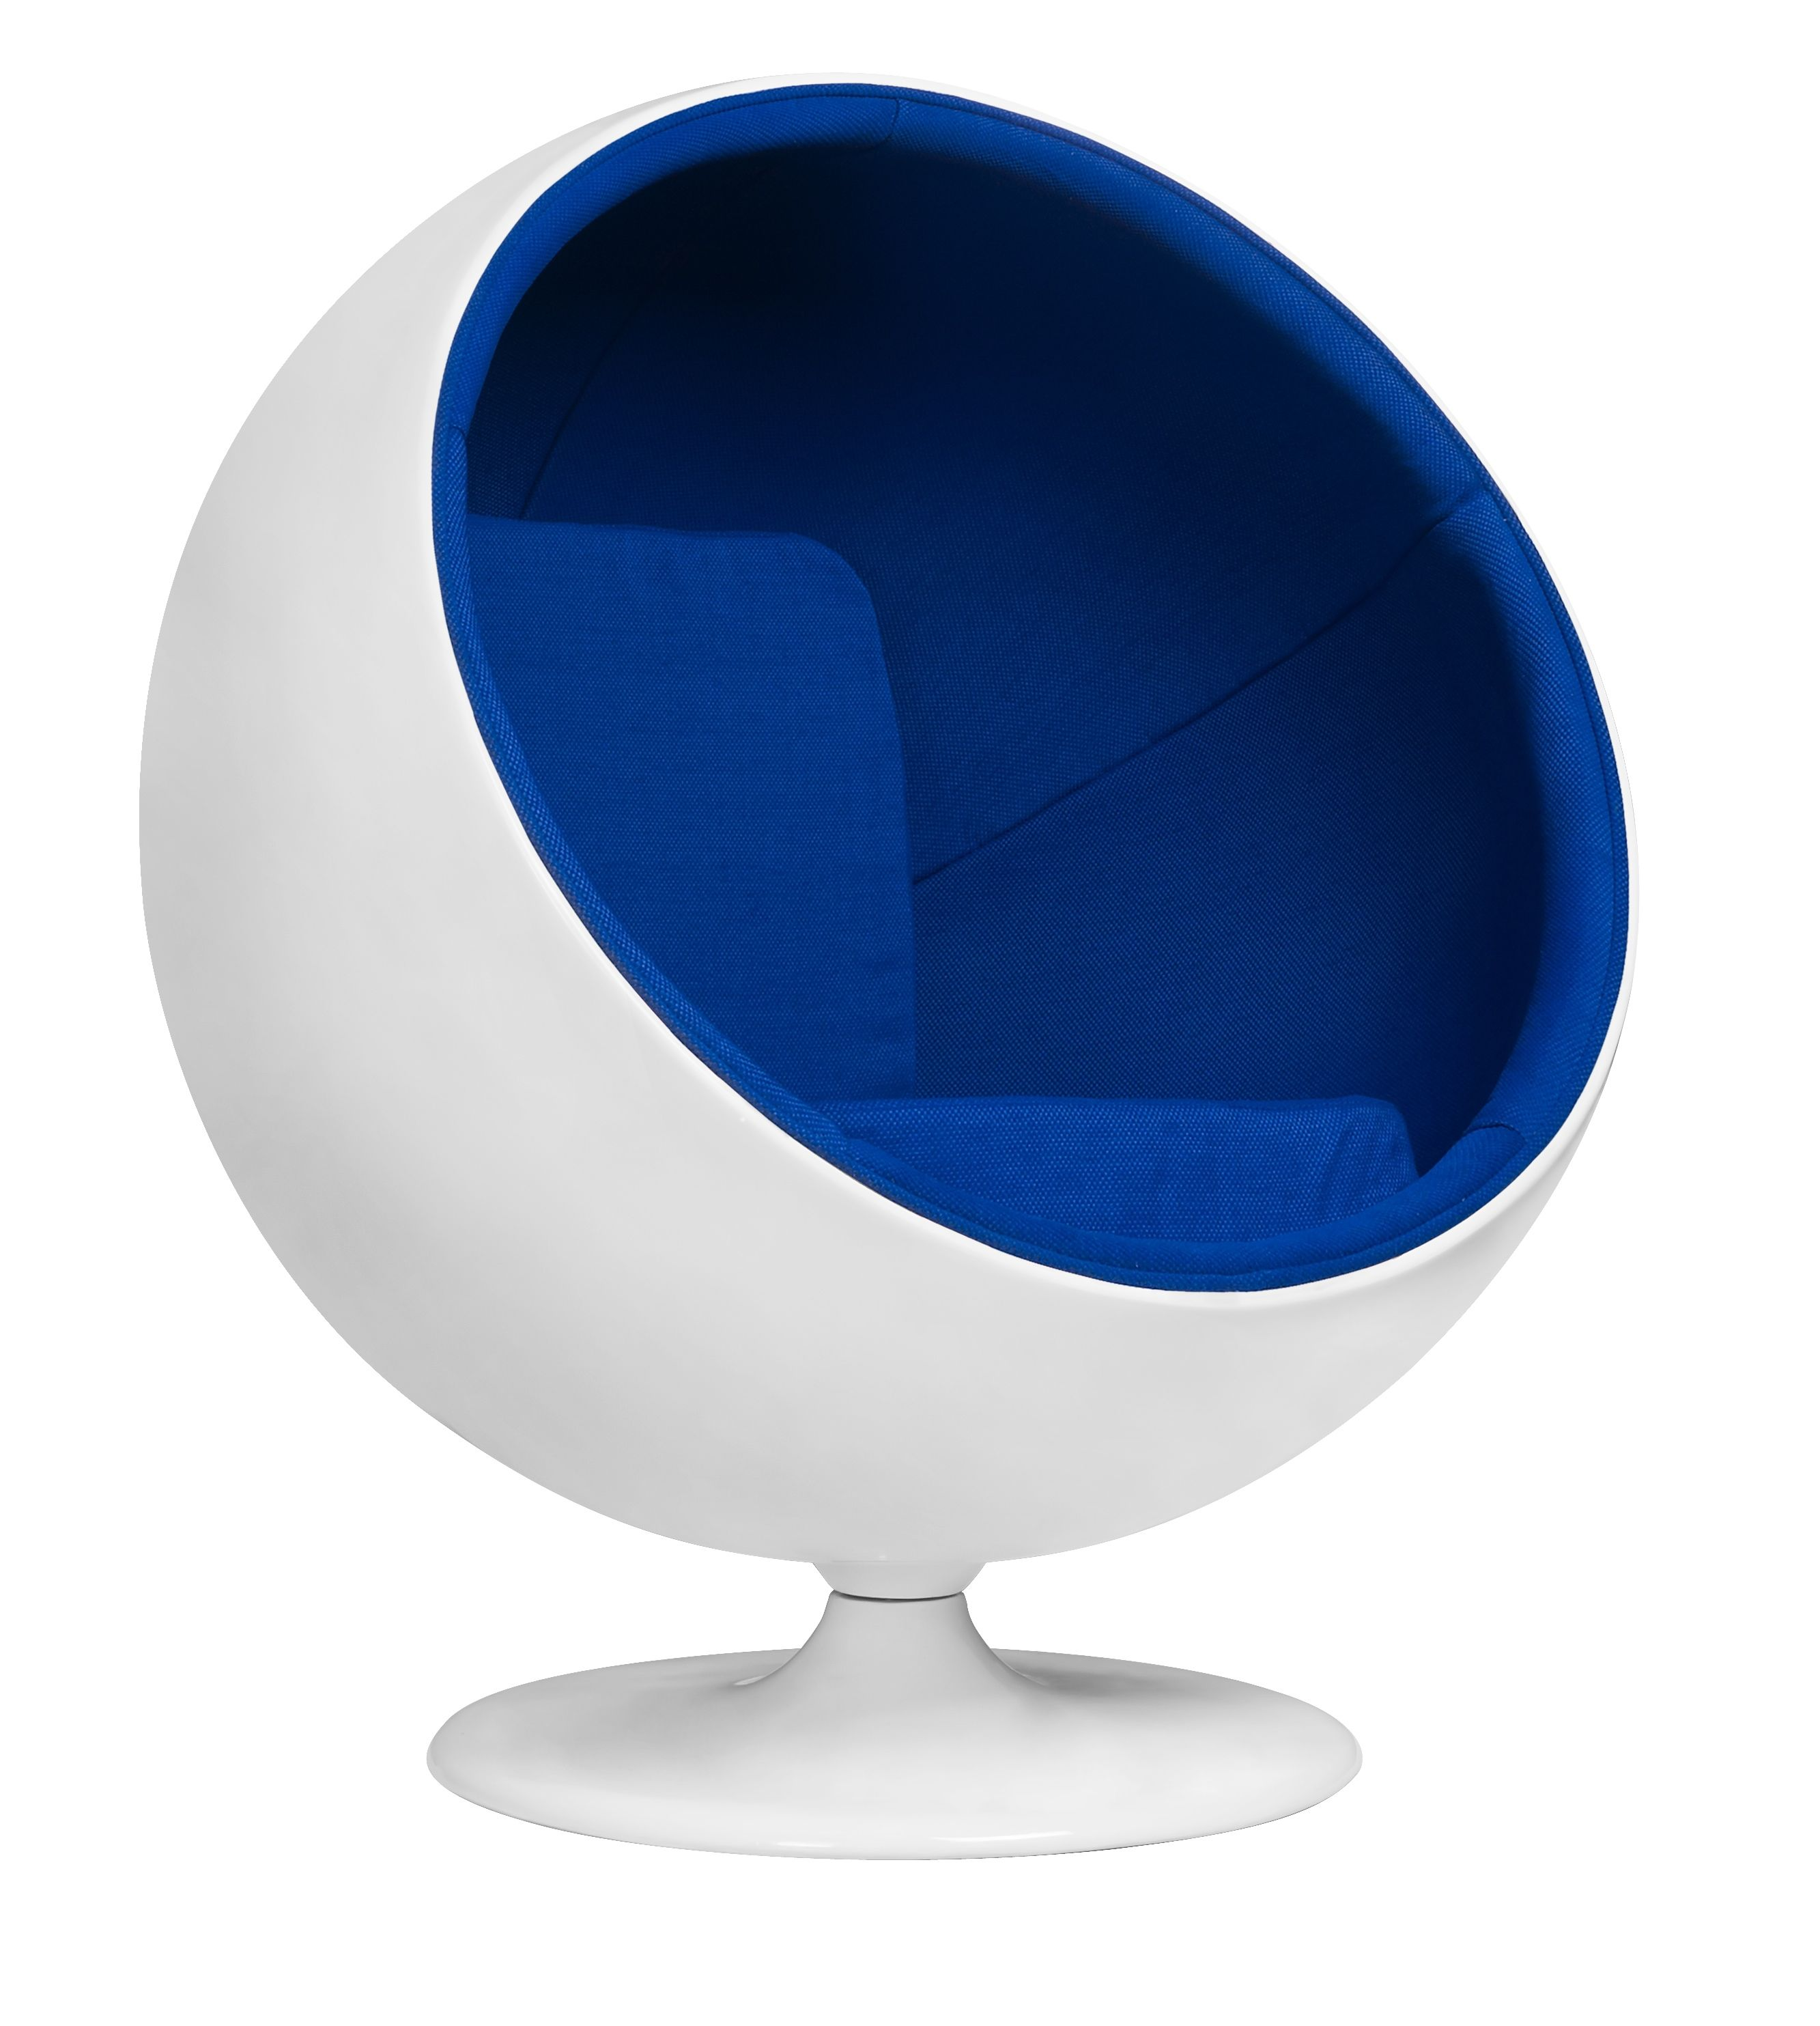 Ball Sessel 3025 Eero Saarinen Ball Chair Blue Furniture Saarinen Ball